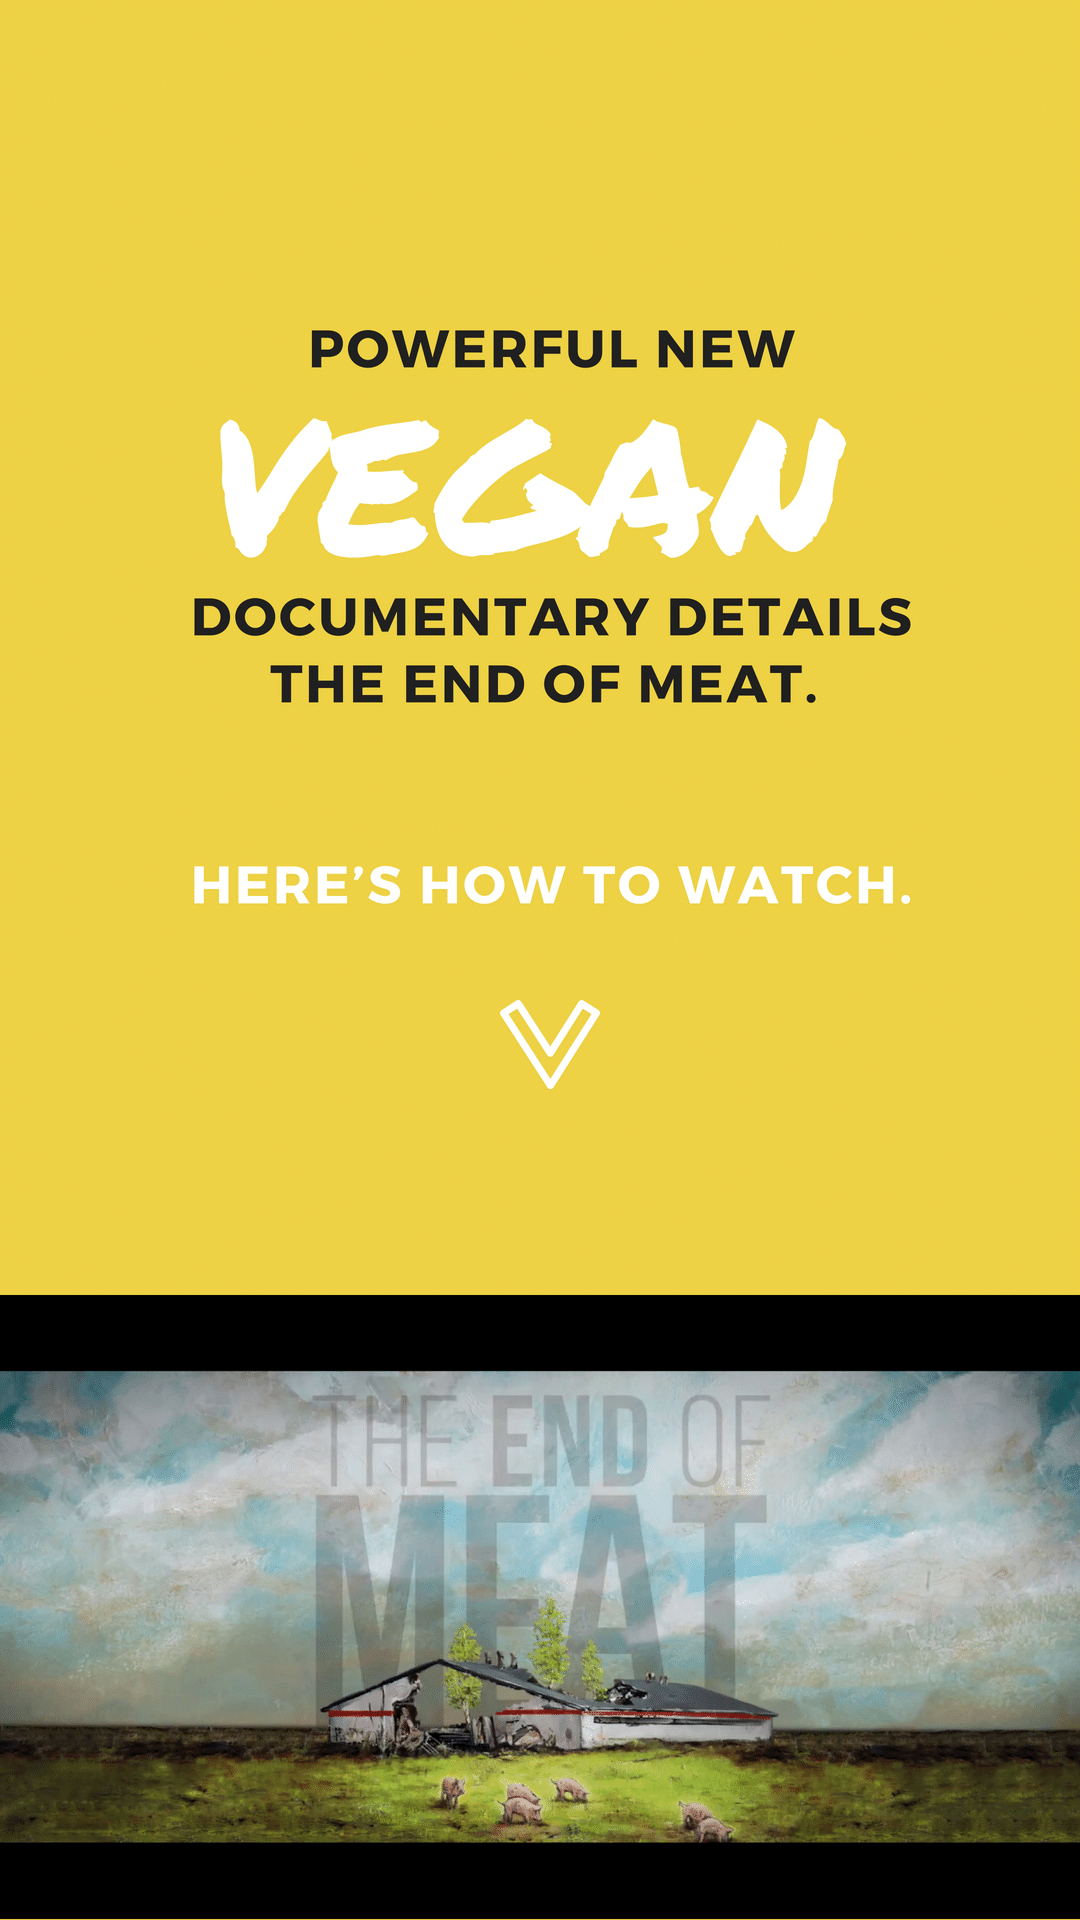 Powerful New Vegan Documentary Details the End of Meat. Here's How to Watch.